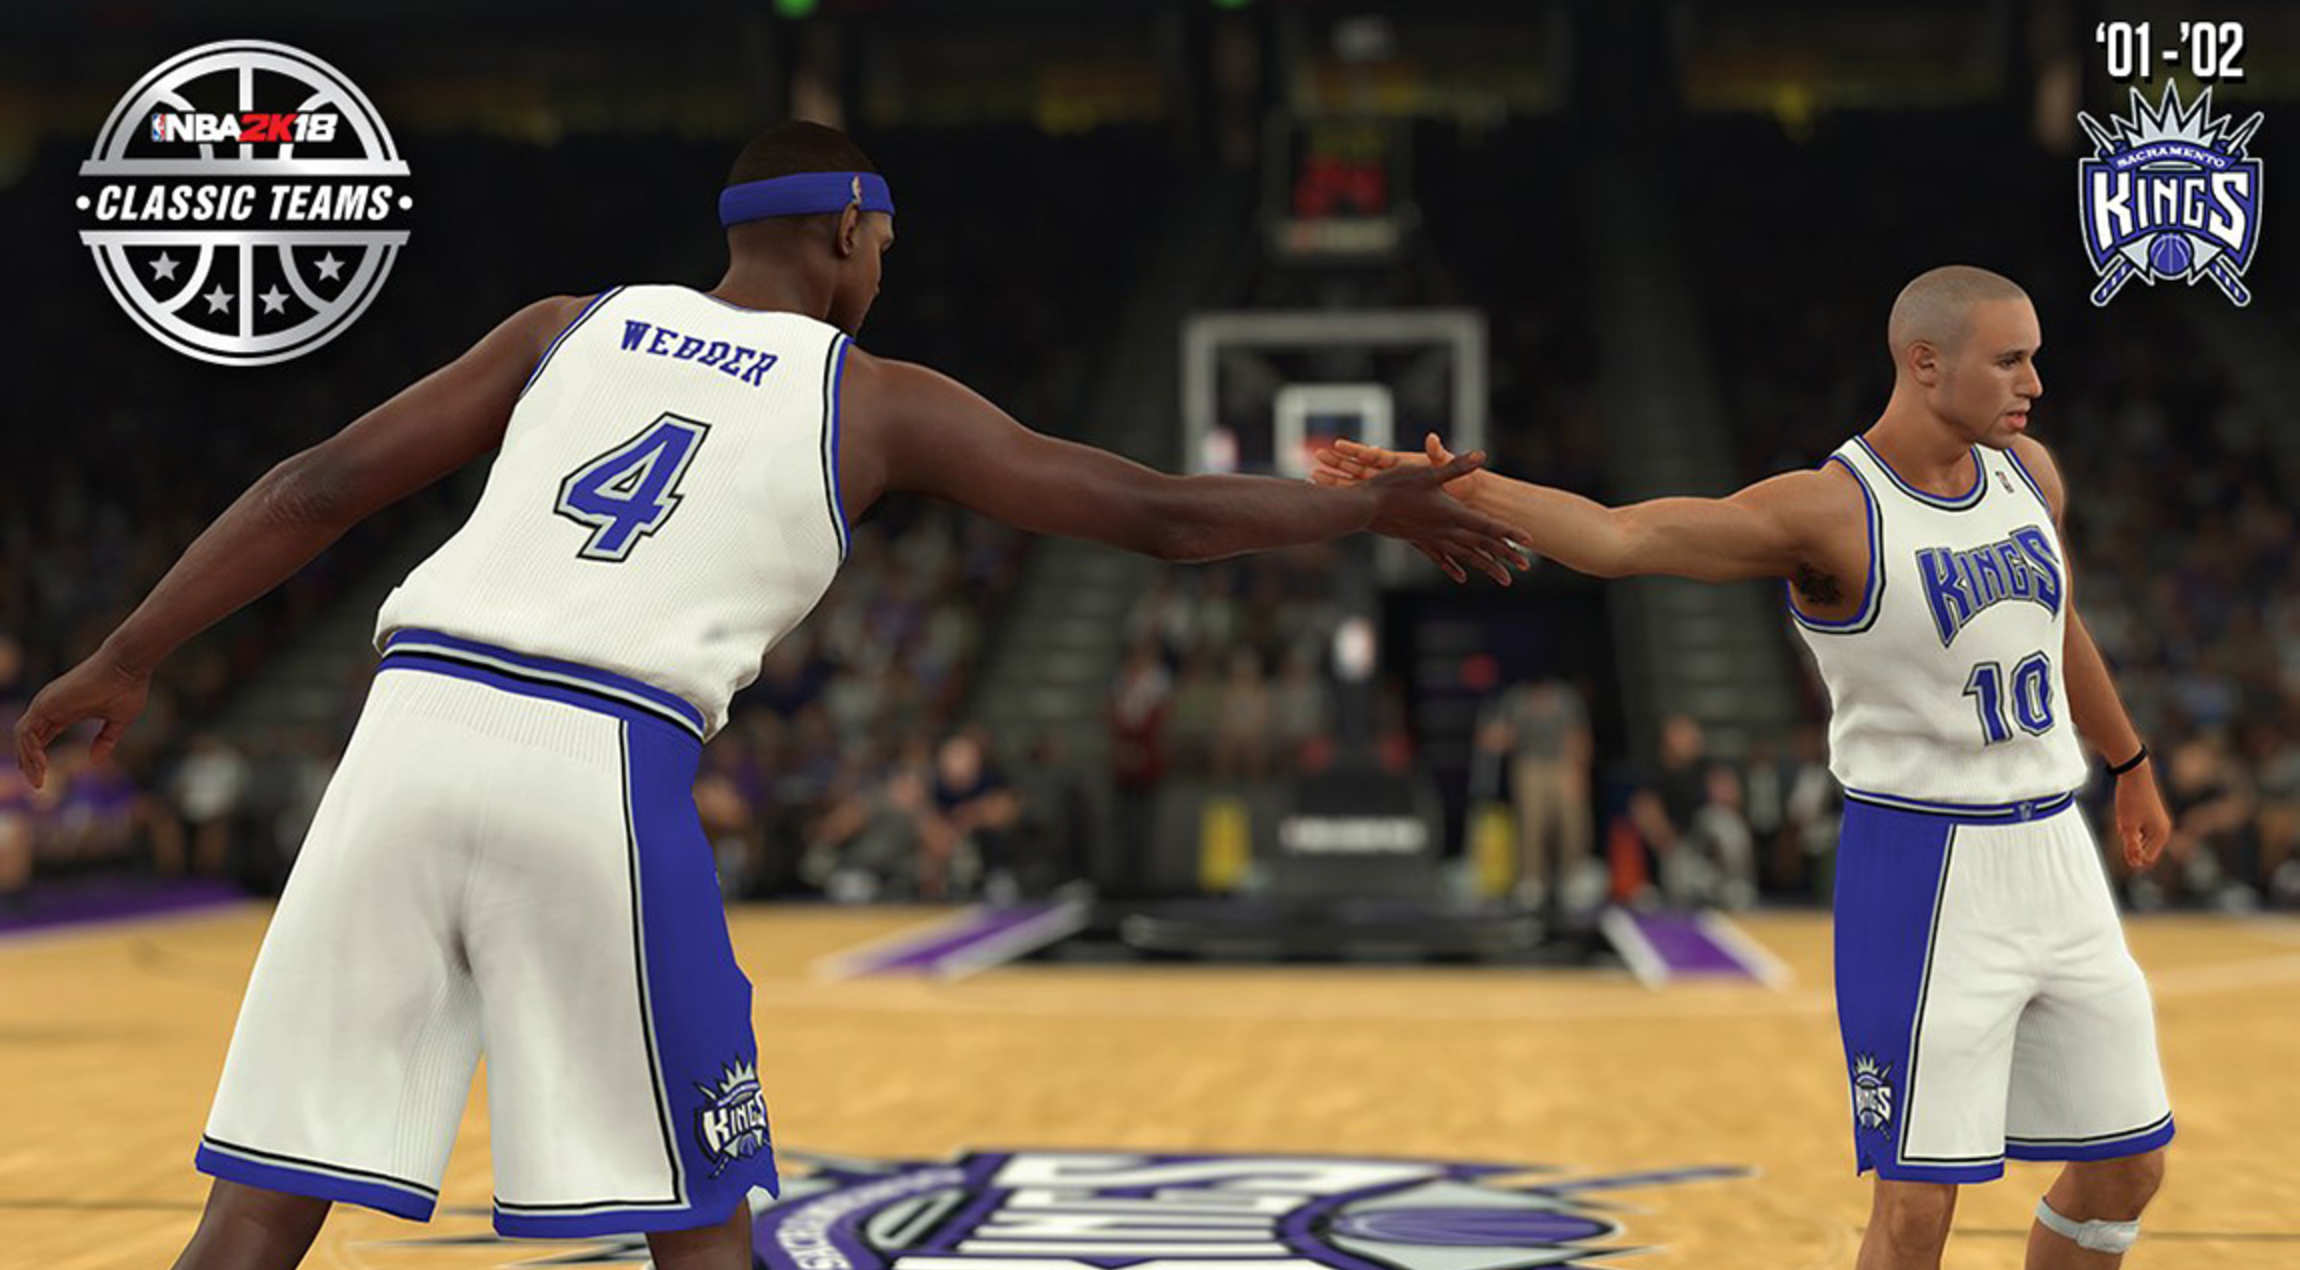 2001 02 kings featured as classic team in nba 2k18 sacramento kings